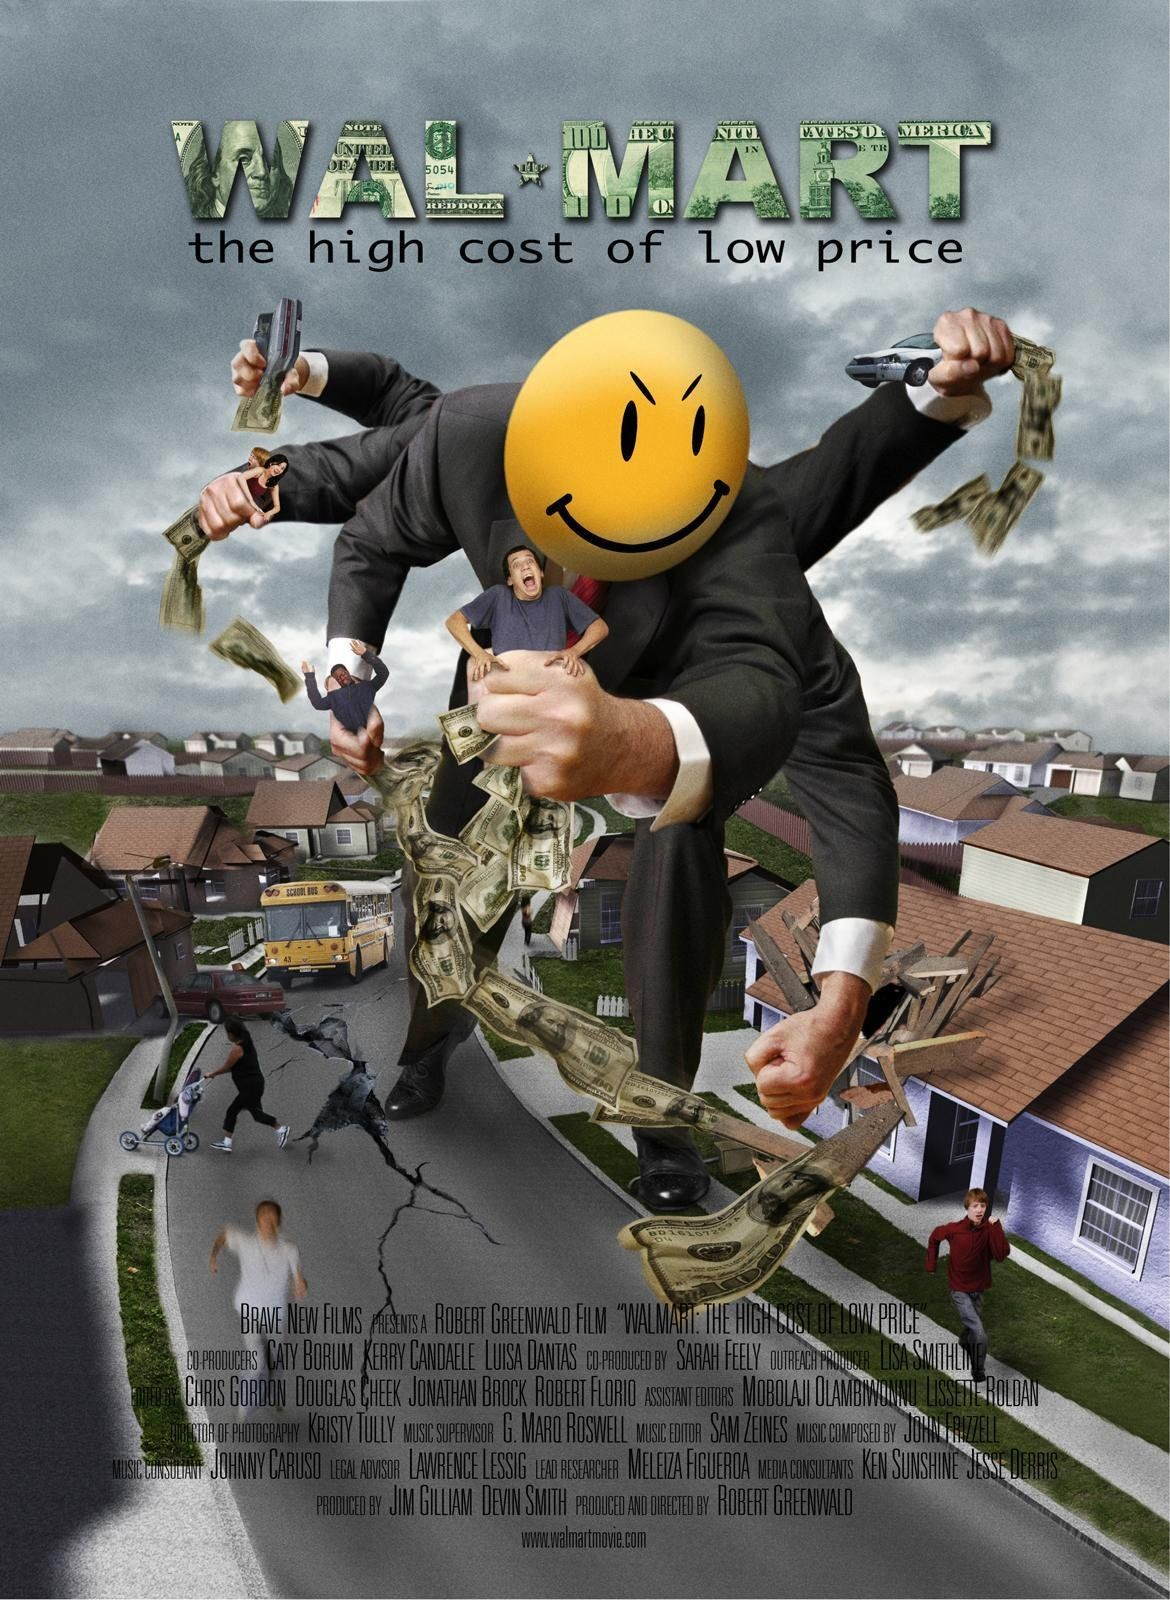 WalMart The High Cost of Low Price Lowest price